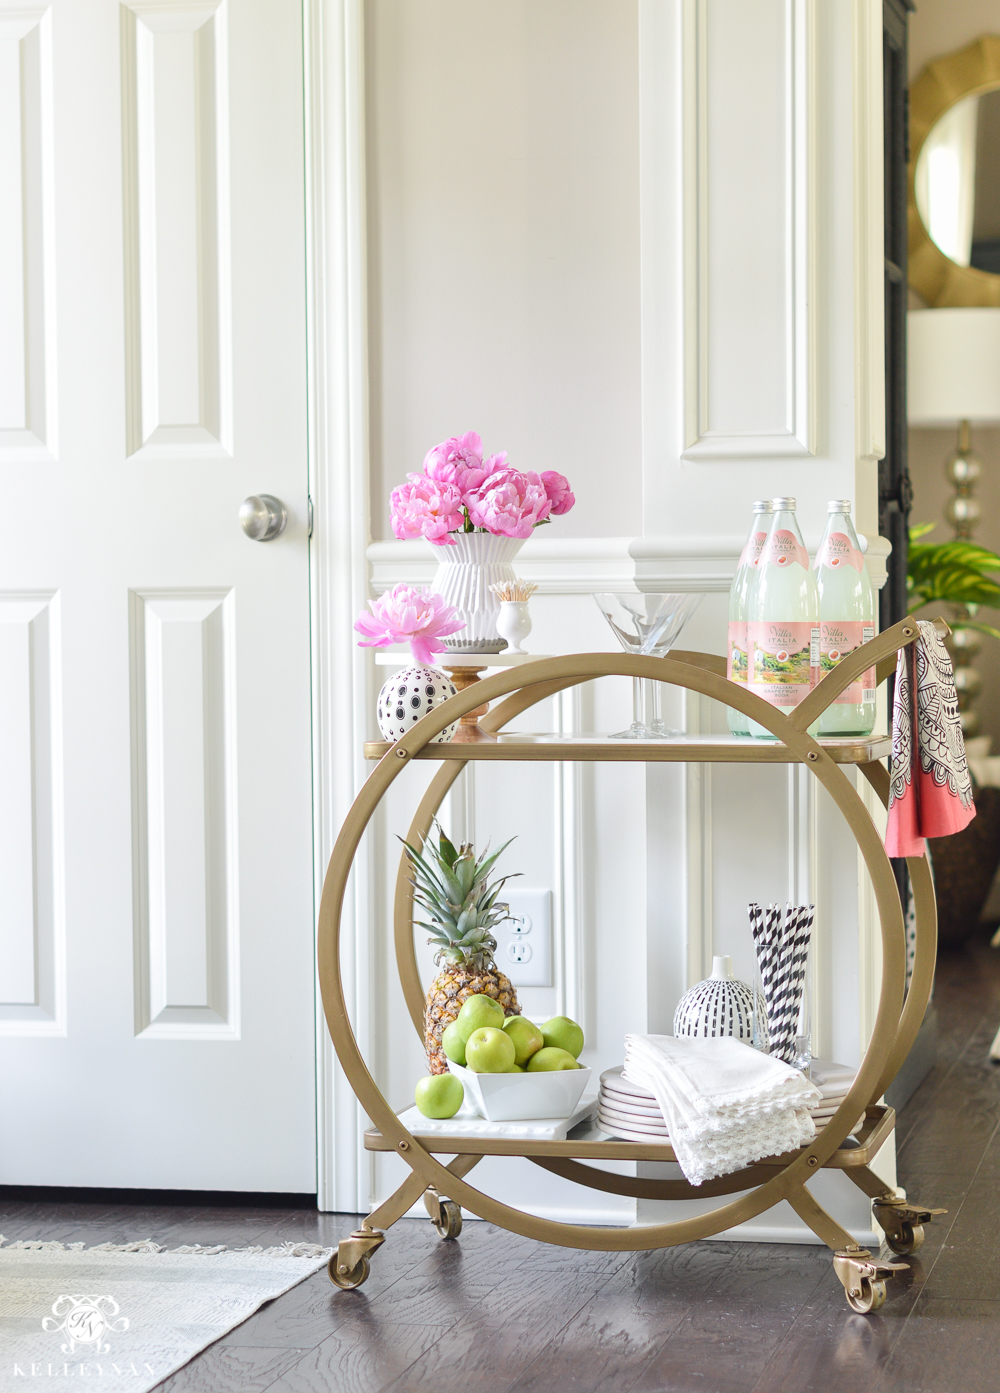 Easy Tropical Bar Cart with Peonies and Pineapple- set up in foyer